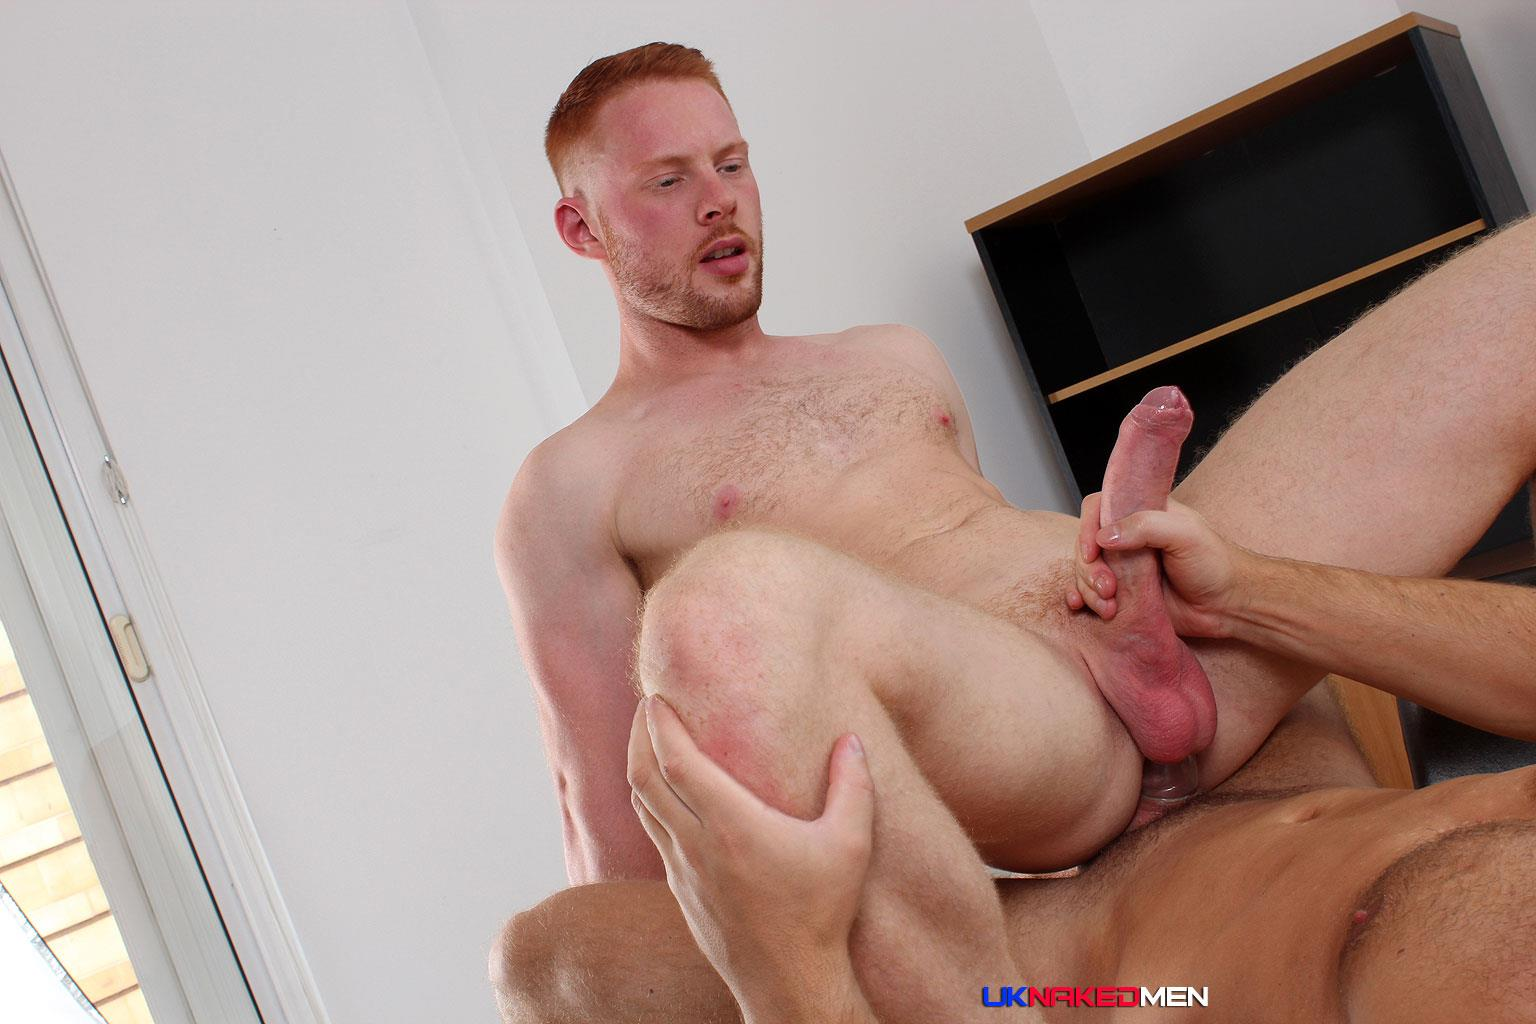 UK-Naked-Men-Logan-Moore-and-Andro-Maas-Redhead-Gets-Fucked-By-Big-Uncut-Cock-Amateur-Gay-Porn-17 Redhead Andro Maas Takes A Big Thick Uncut Cock Up The Ass